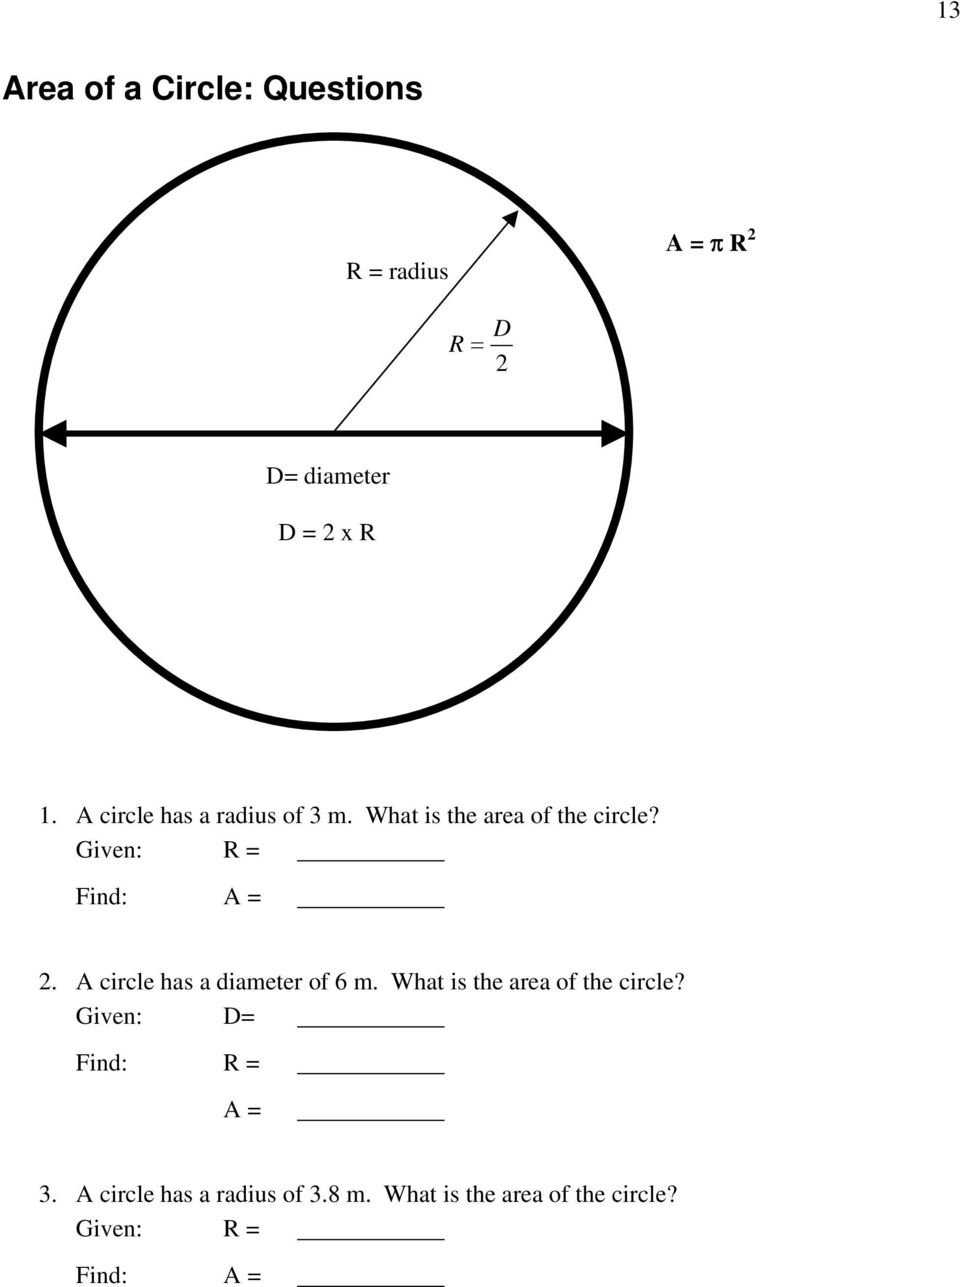 A circle has a diameter of 6 m. What is the area of the circle?